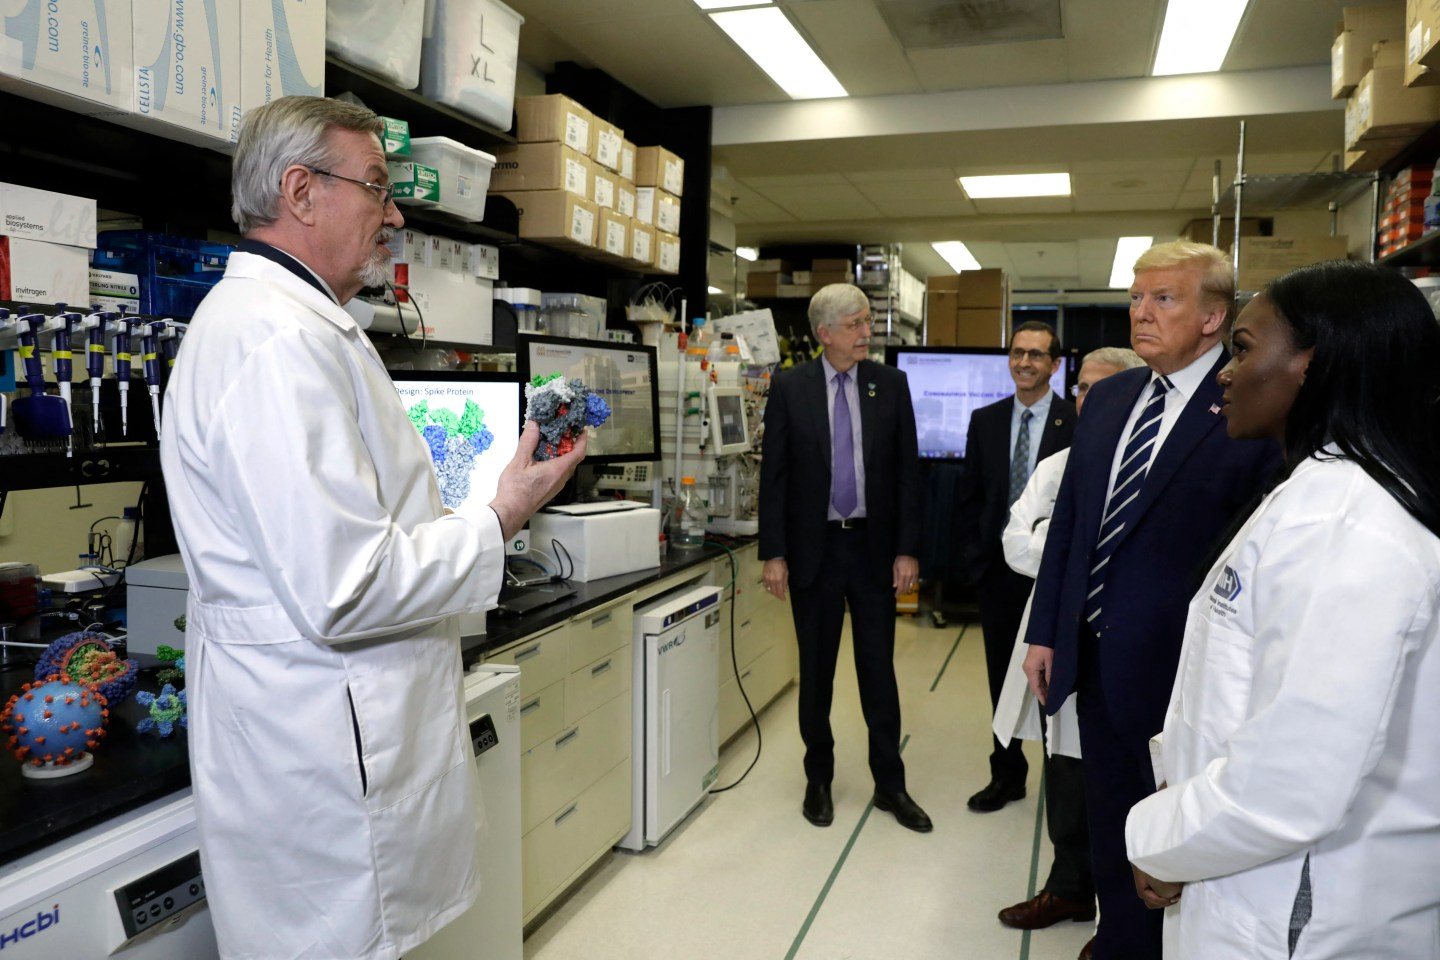 President Donald Trump tours the NIH's Health Vaccine Research Center on March 3, 2020 with Barney Graham, left, and Kizzmekia Corbett, right.